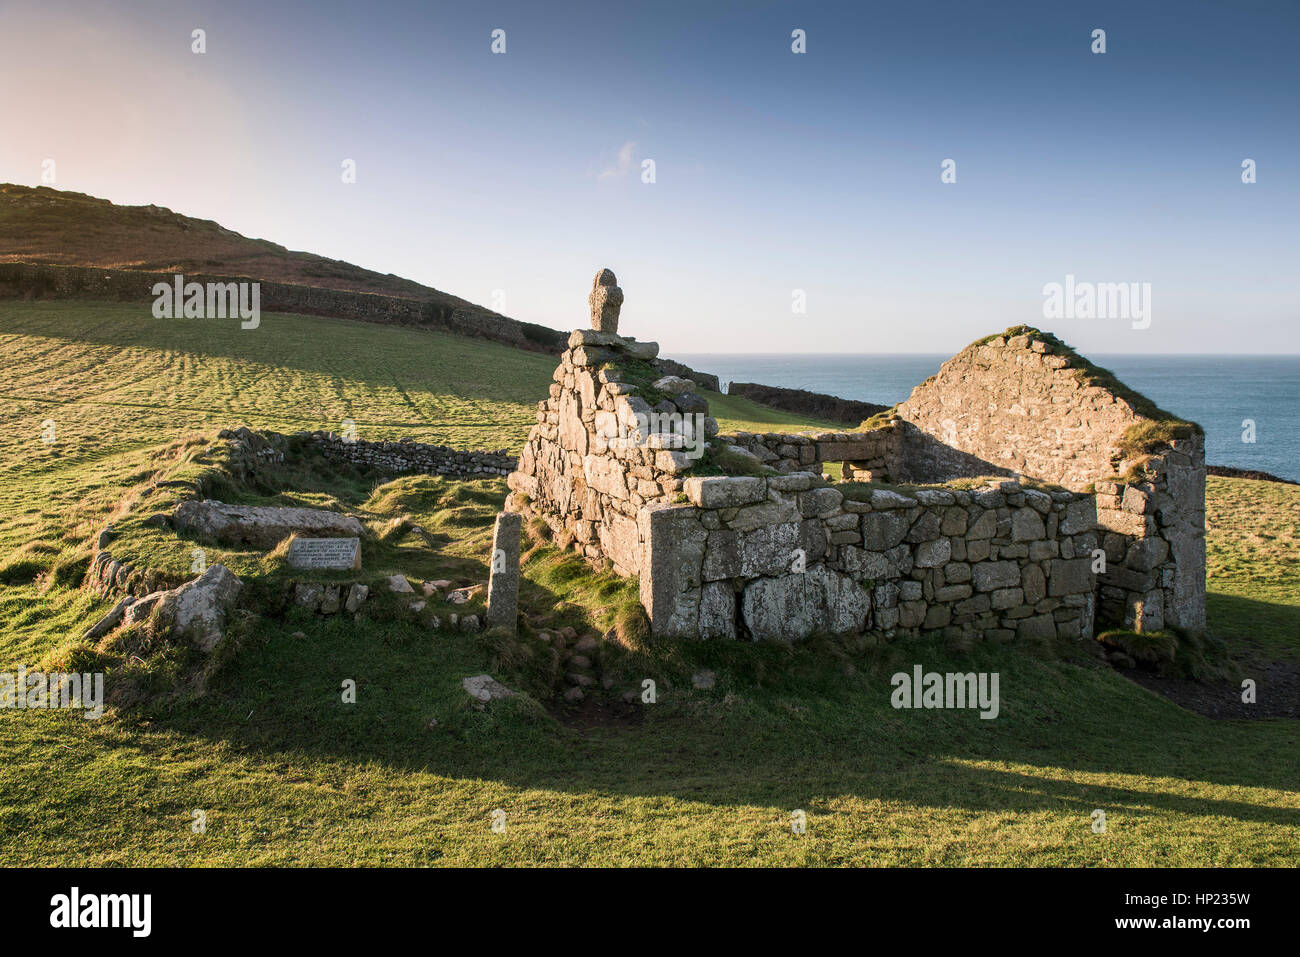 remains Christian St Helen's Oratory Tourism Cape Cornwall England UK. - Stock Image